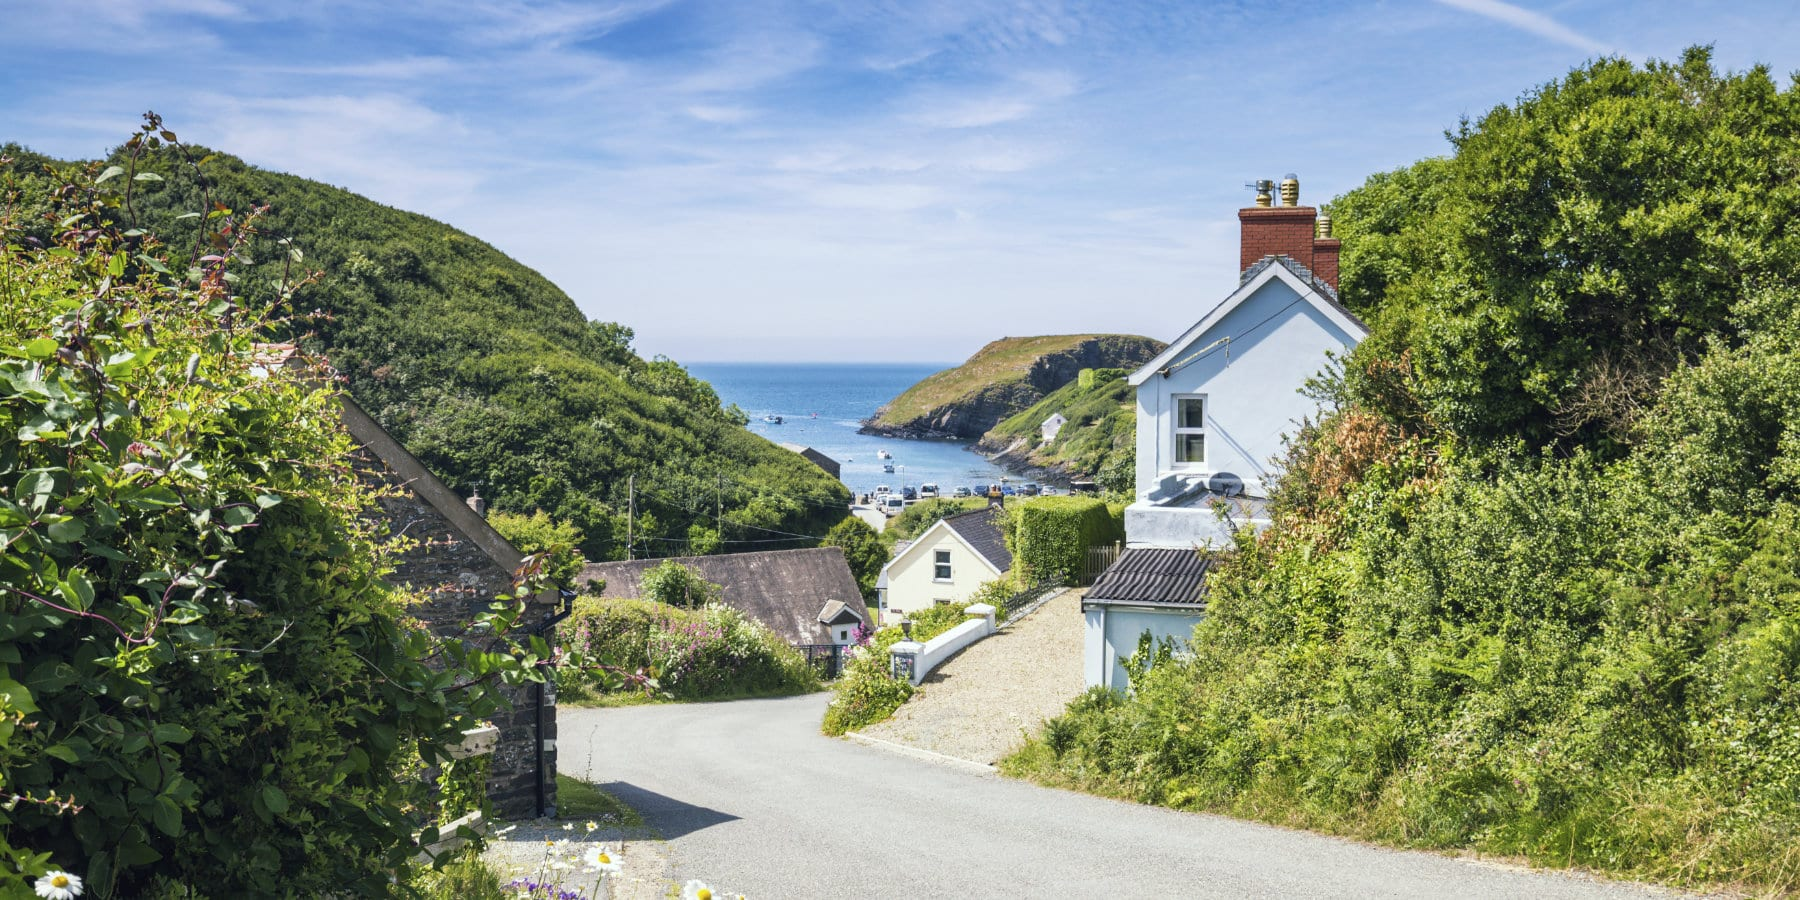 Welsh Coastal Village at Bright Sunny Day